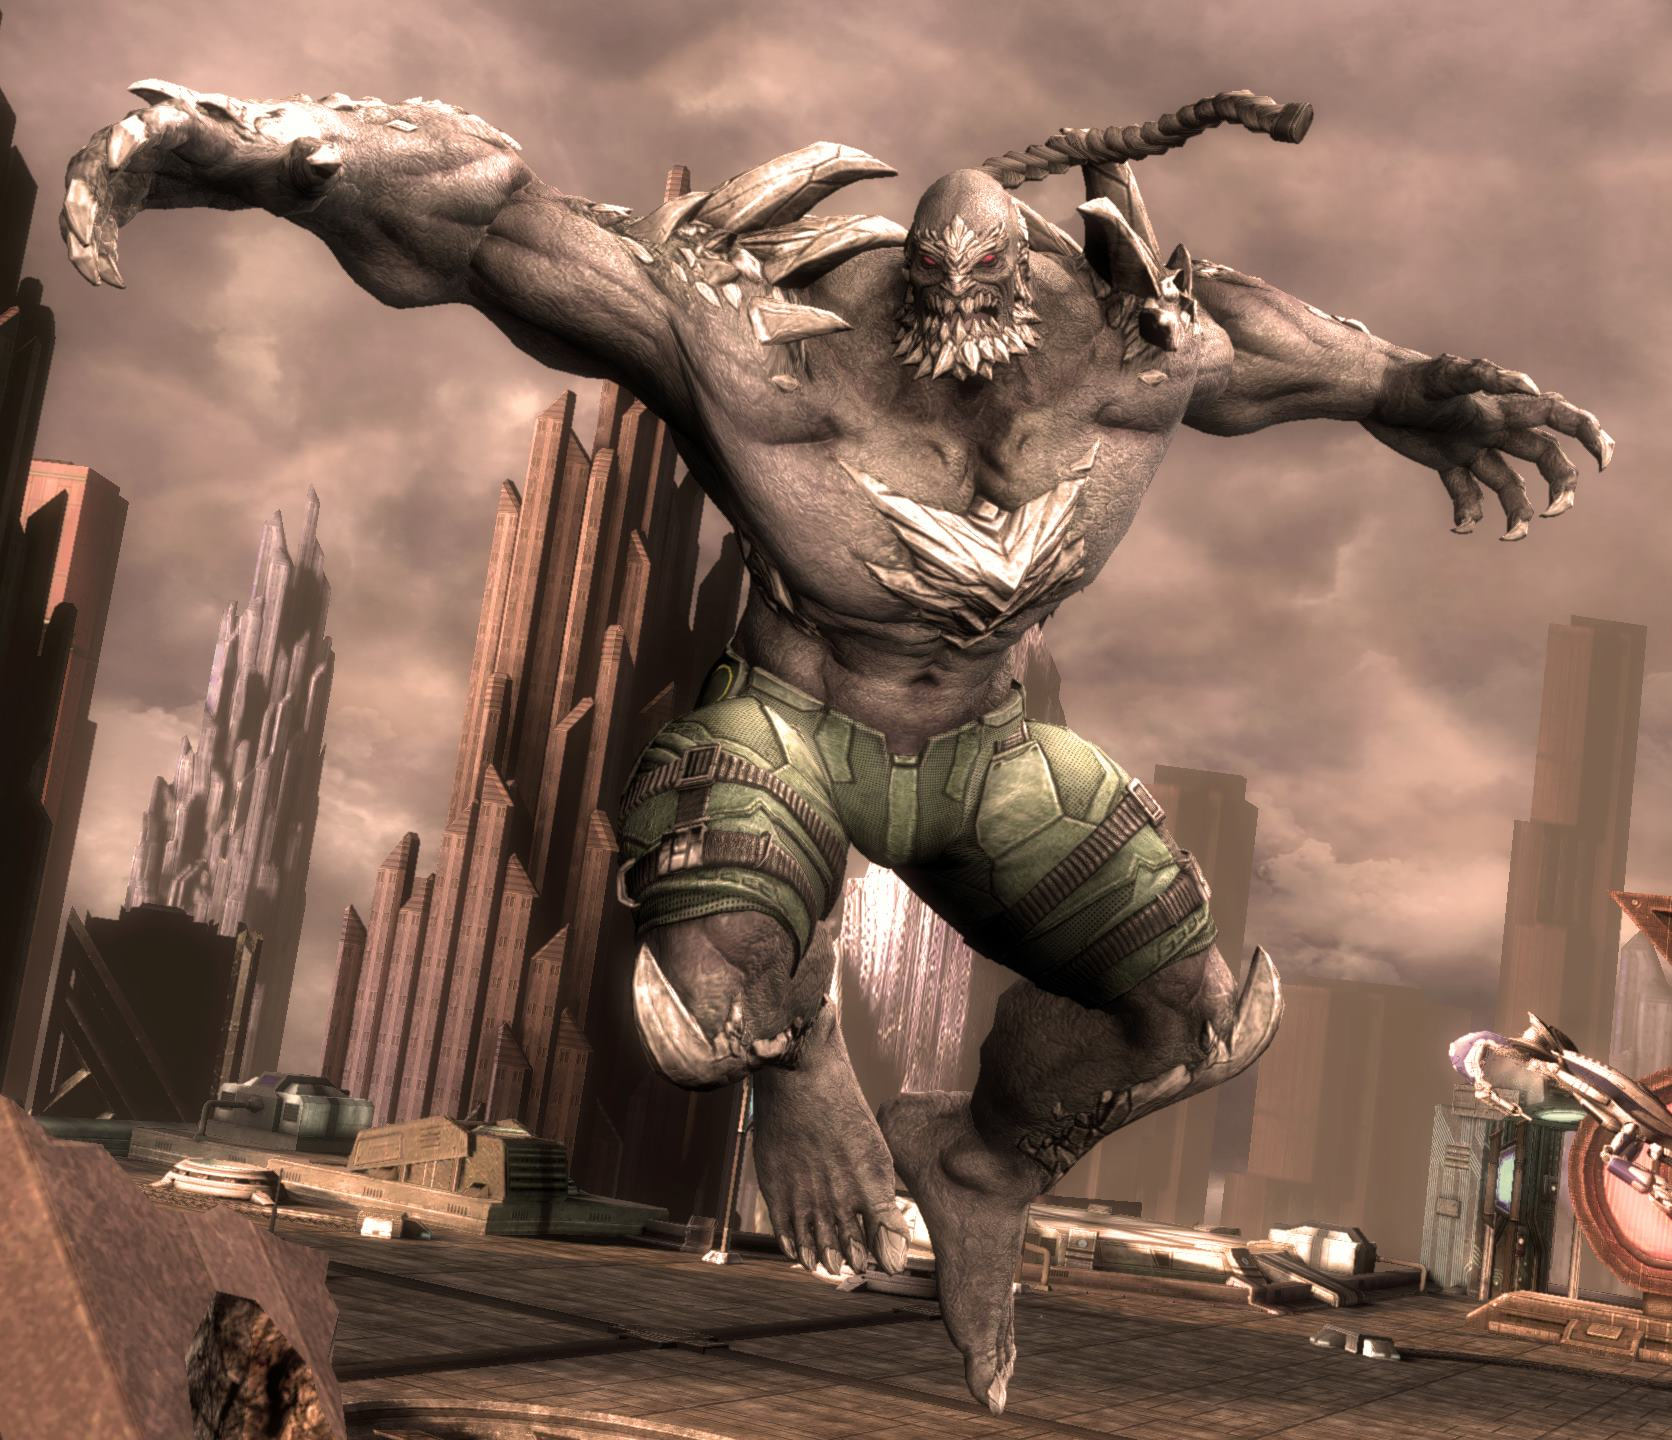 Superman Vs Doomsday Wallpaper Posted By Samantha Anderson